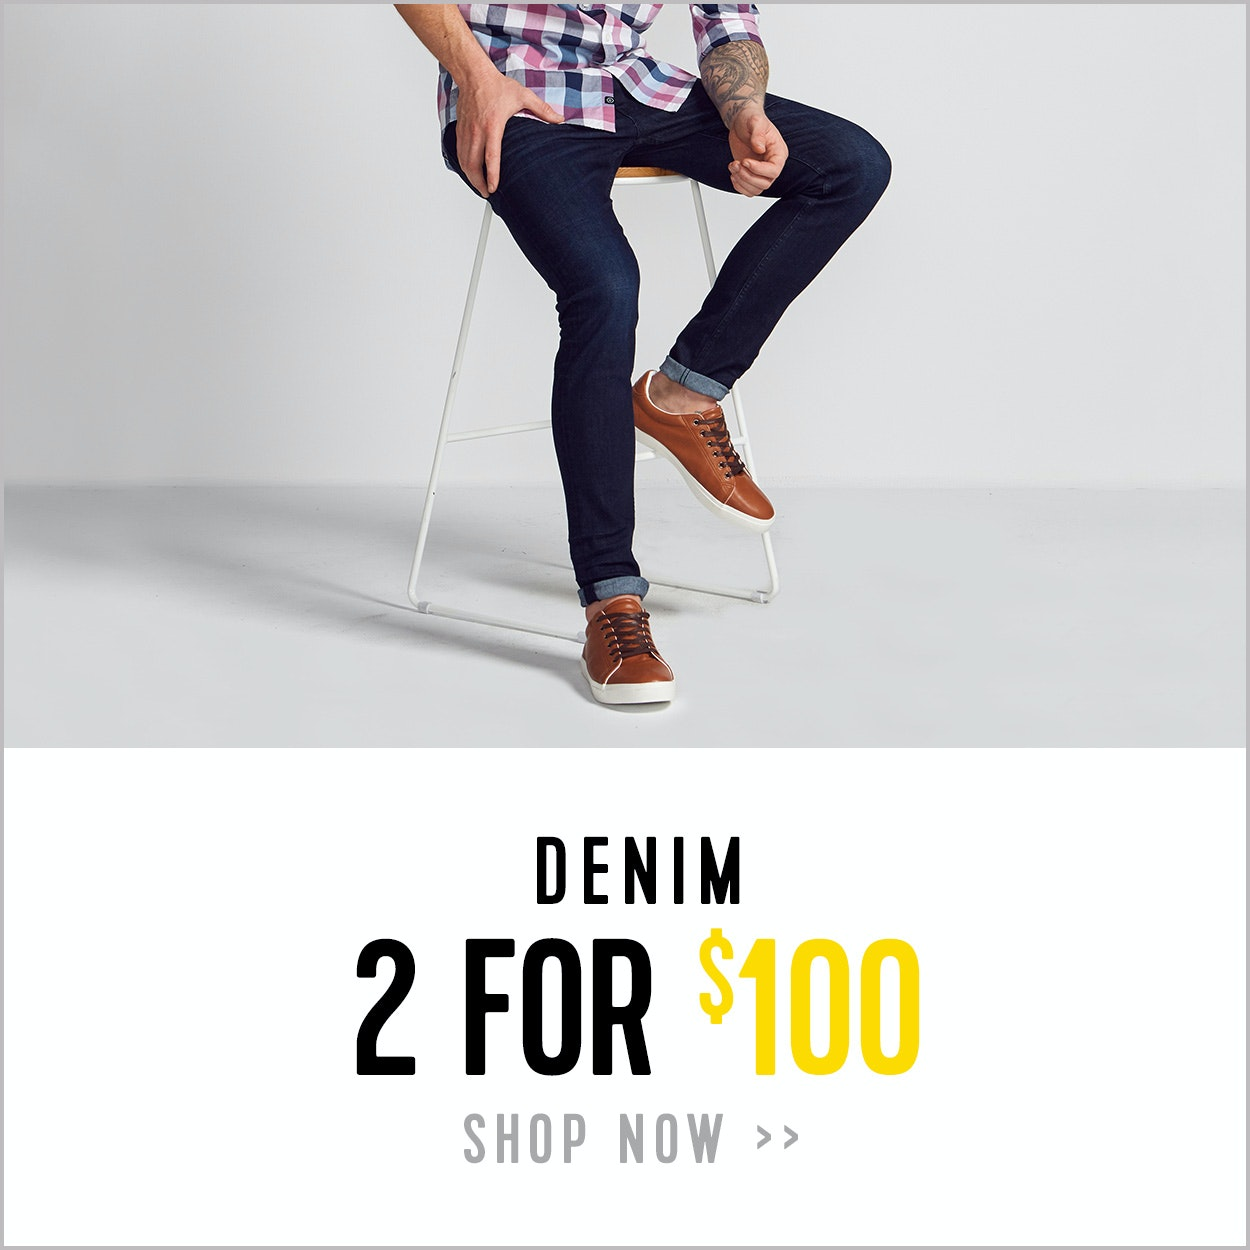 Denim Jeans - 2 for $100